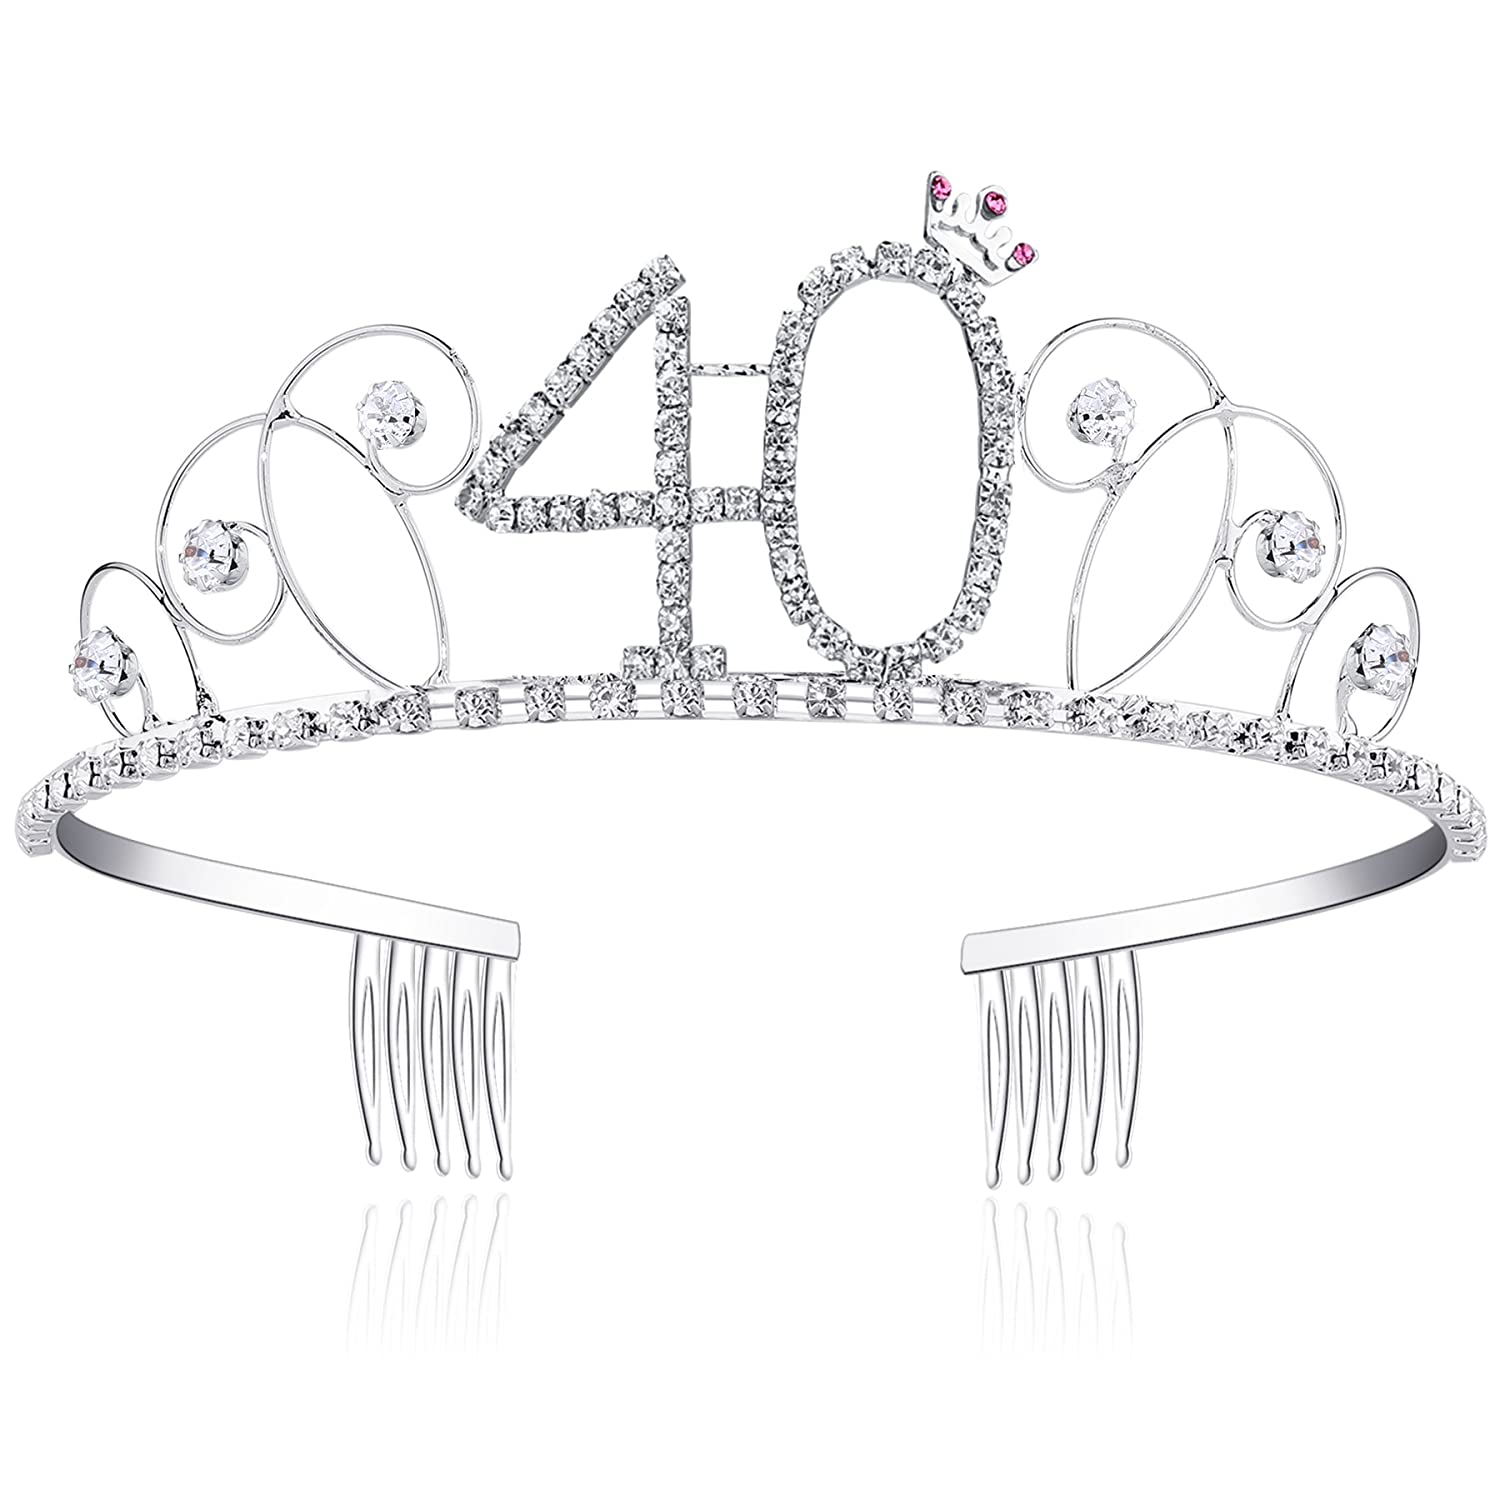 BABEYOND Crystal Tiara Birthday Crown Princess Crowns Hair Accessories Silver Diamante Happy 18/20/30/40/50/60th Birthday (40 Birth)